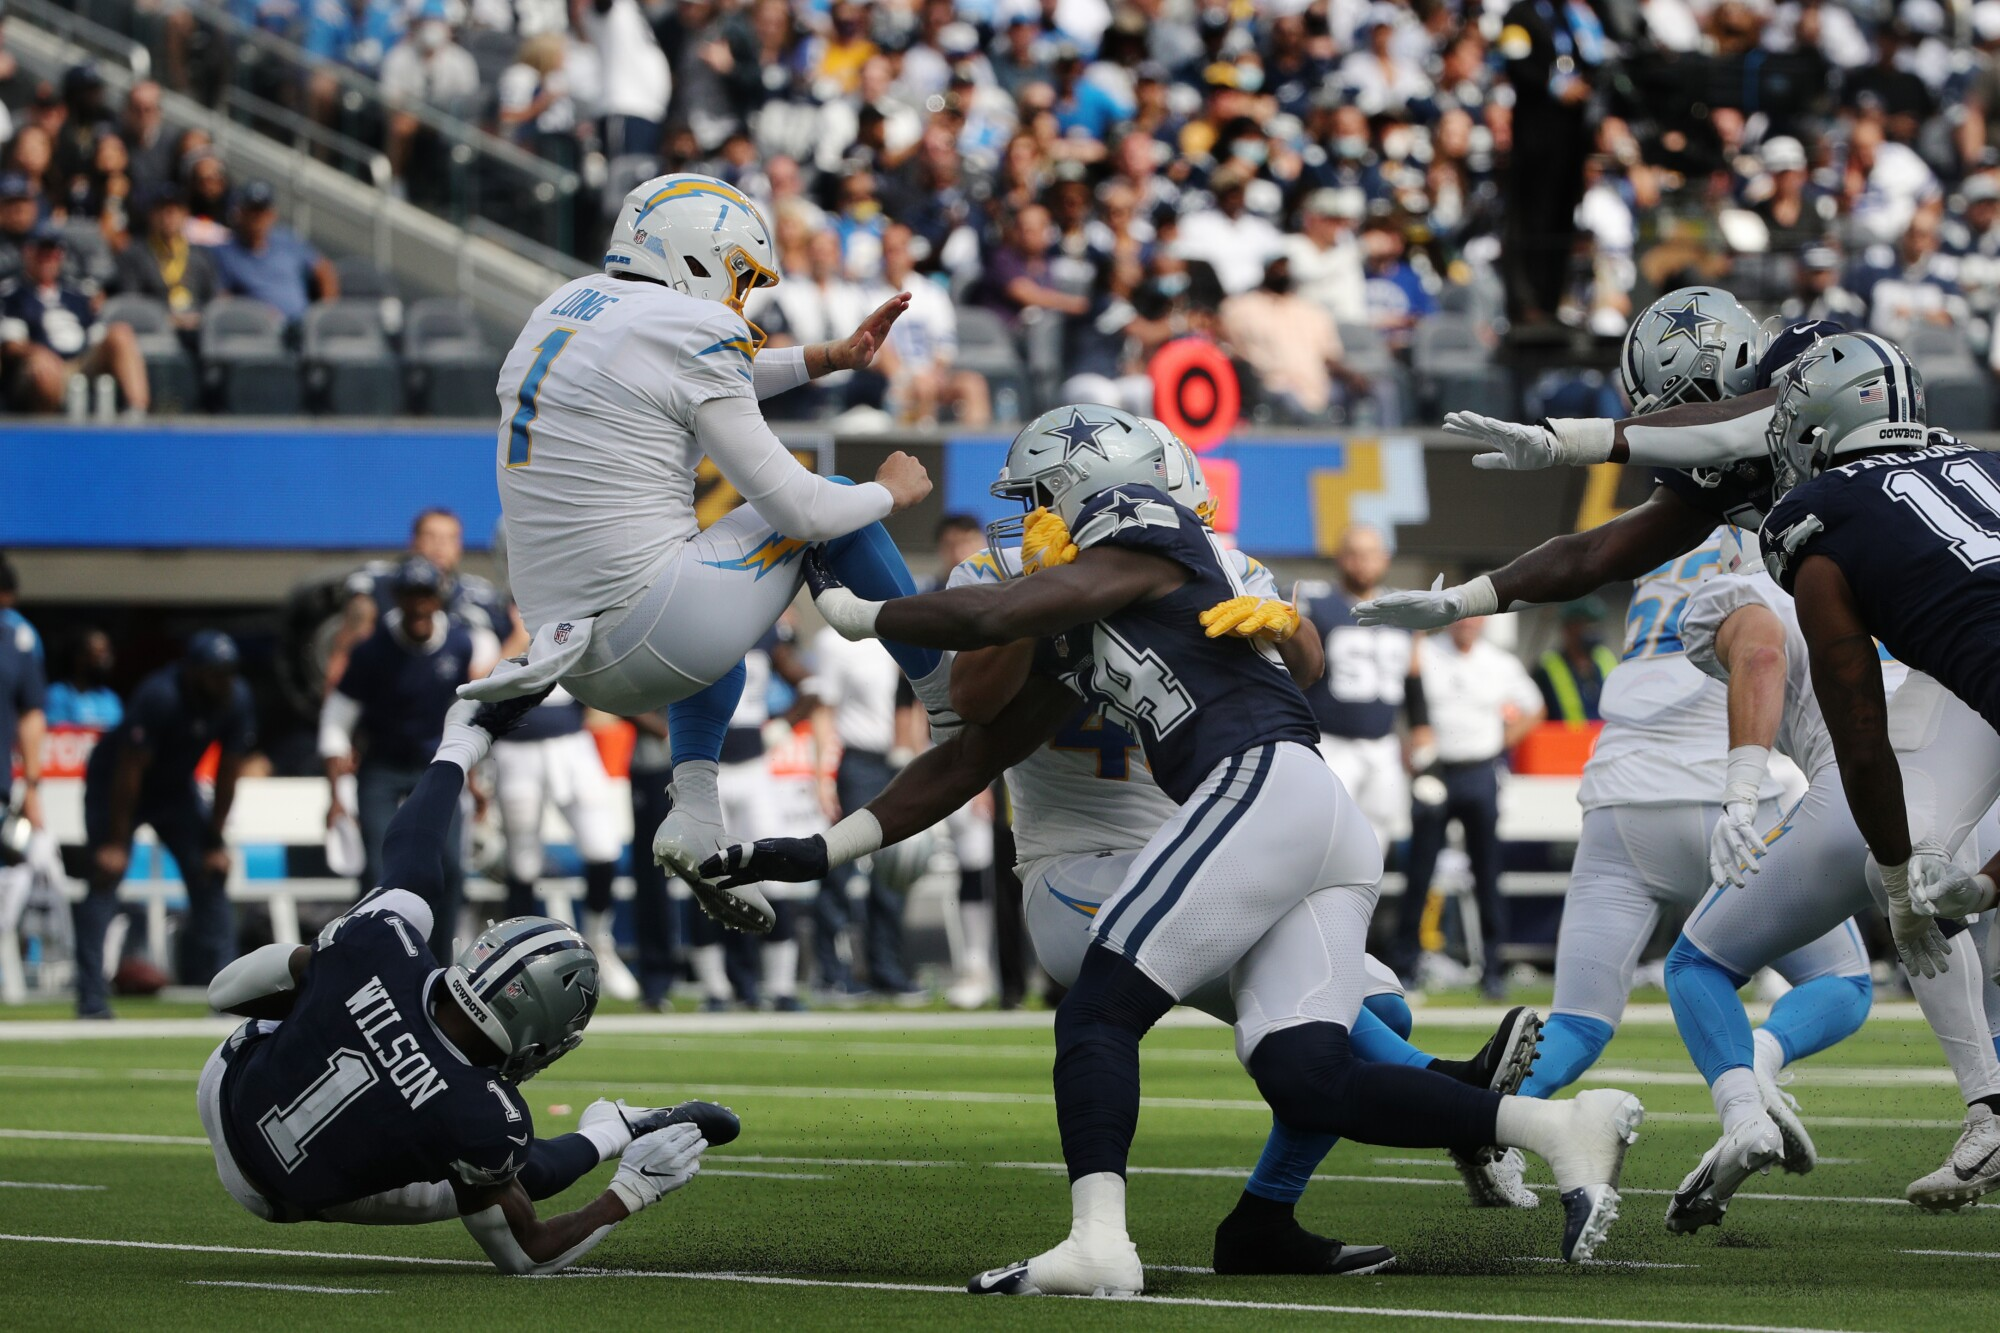 Dallas Cowboys defensive end Azur Kamara is penalized for roughing Chargers punter Ty Long.